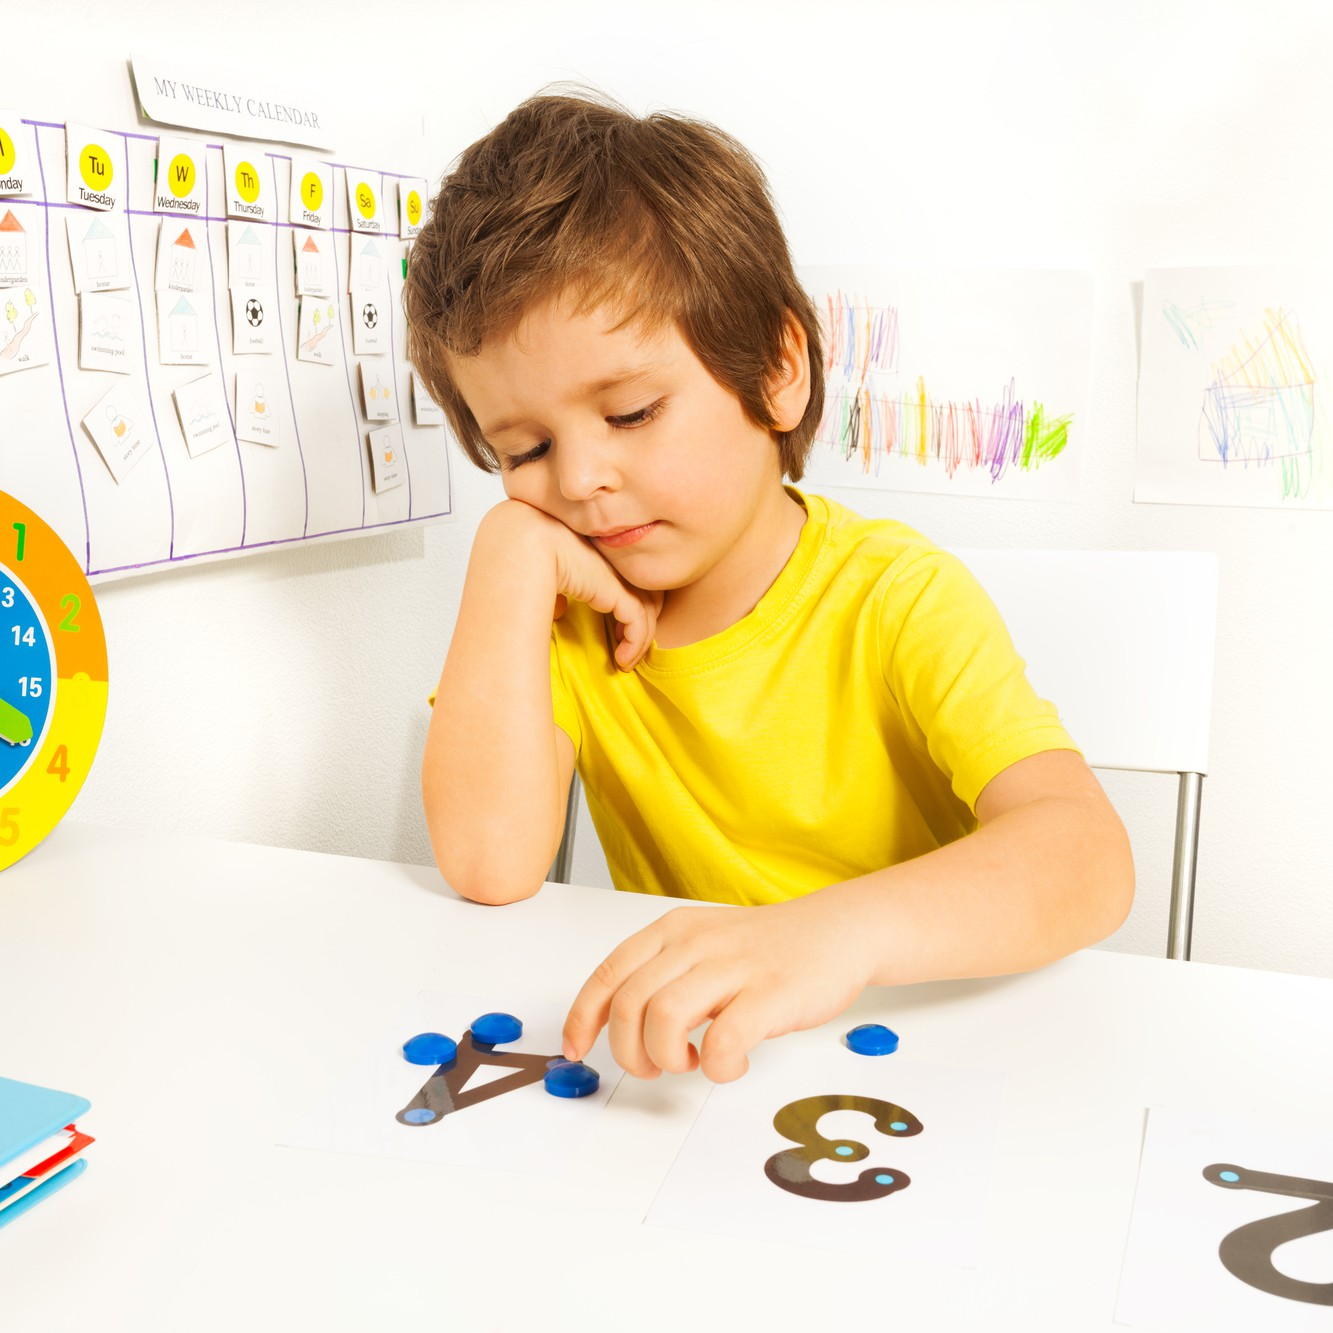 Boy puts blue coins as values on the numbers during math exercise as part of Applied Behavior Analysis (ABA) sitting at the table indoors